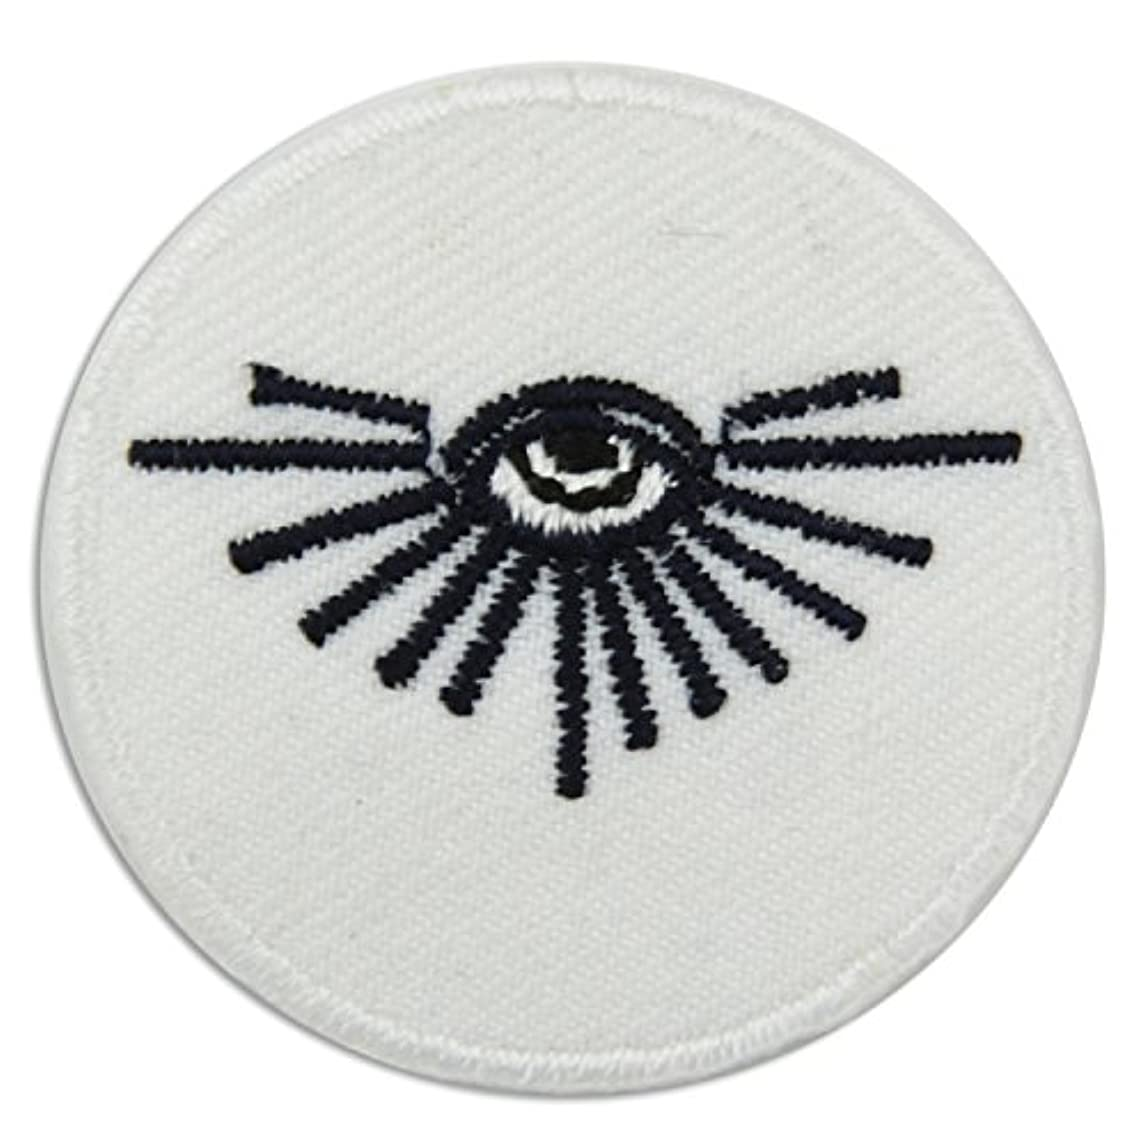 All Seeing Eye Black and Gold Embroidered Masonic Patch - 1 1/2